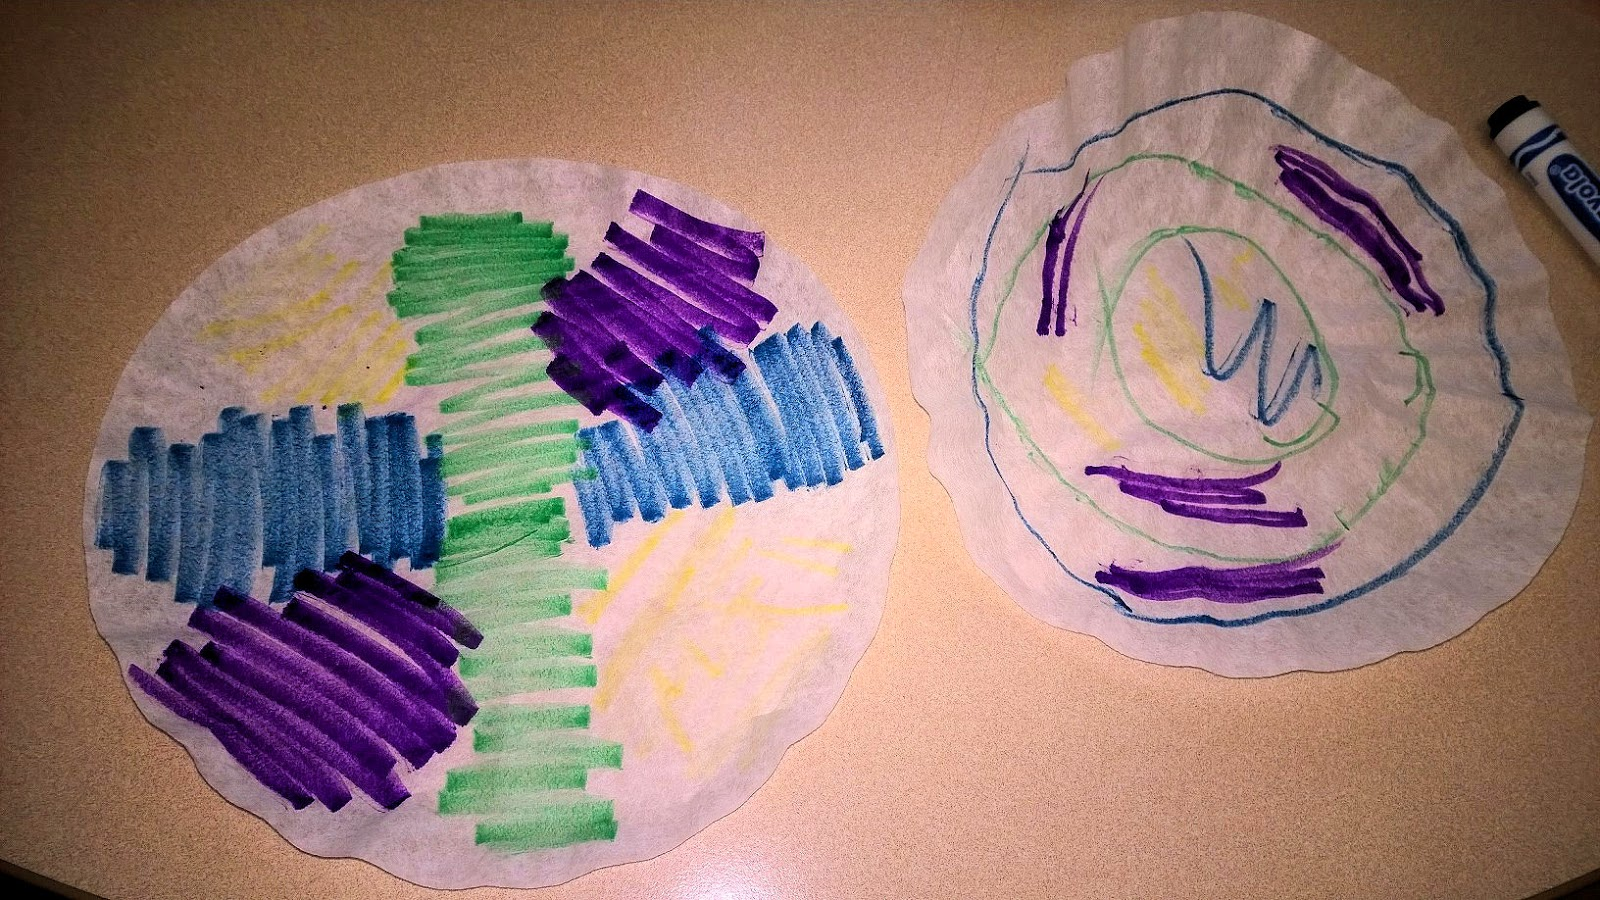 Flatten the coffee filters and color on them with the washable markers